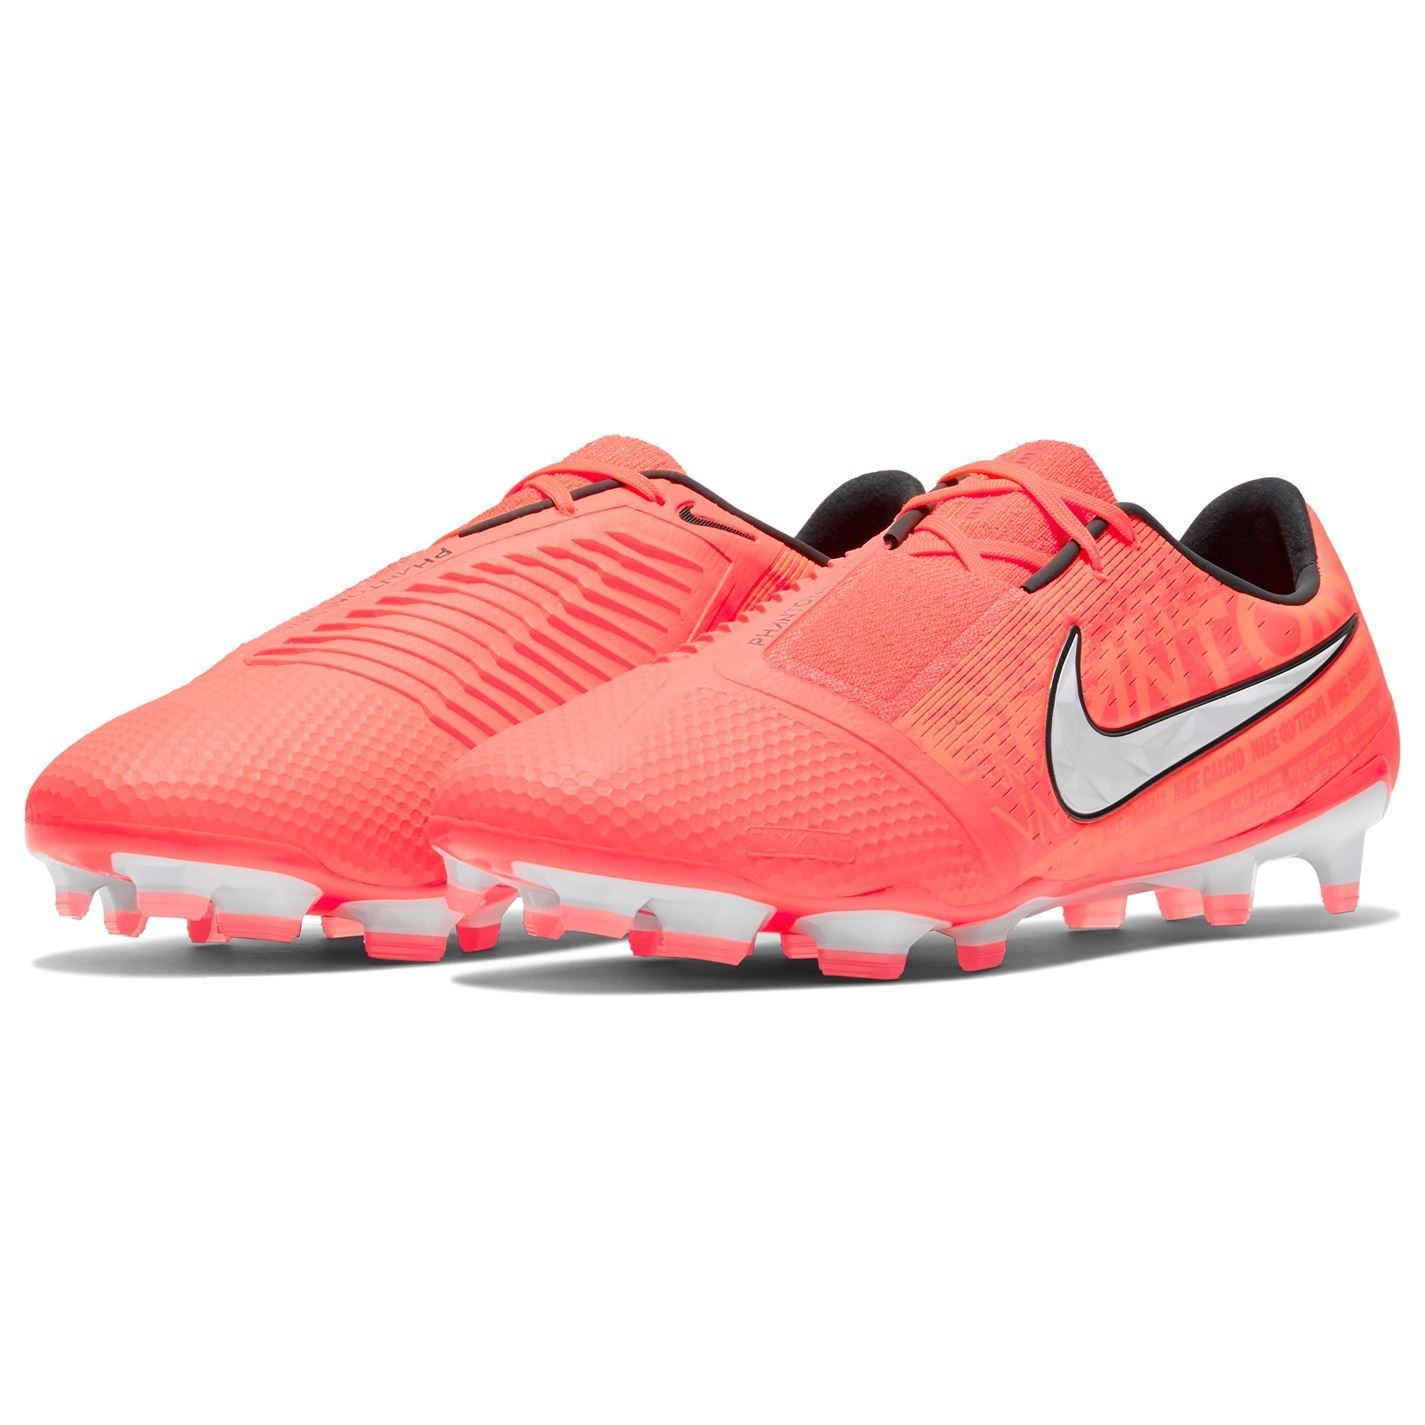 Nike-Phantom-Venom-Elite-Homme-FG-Firm-Ground-Chaussures-De-Football-Chaussures-de-foot-crampons miniature 3